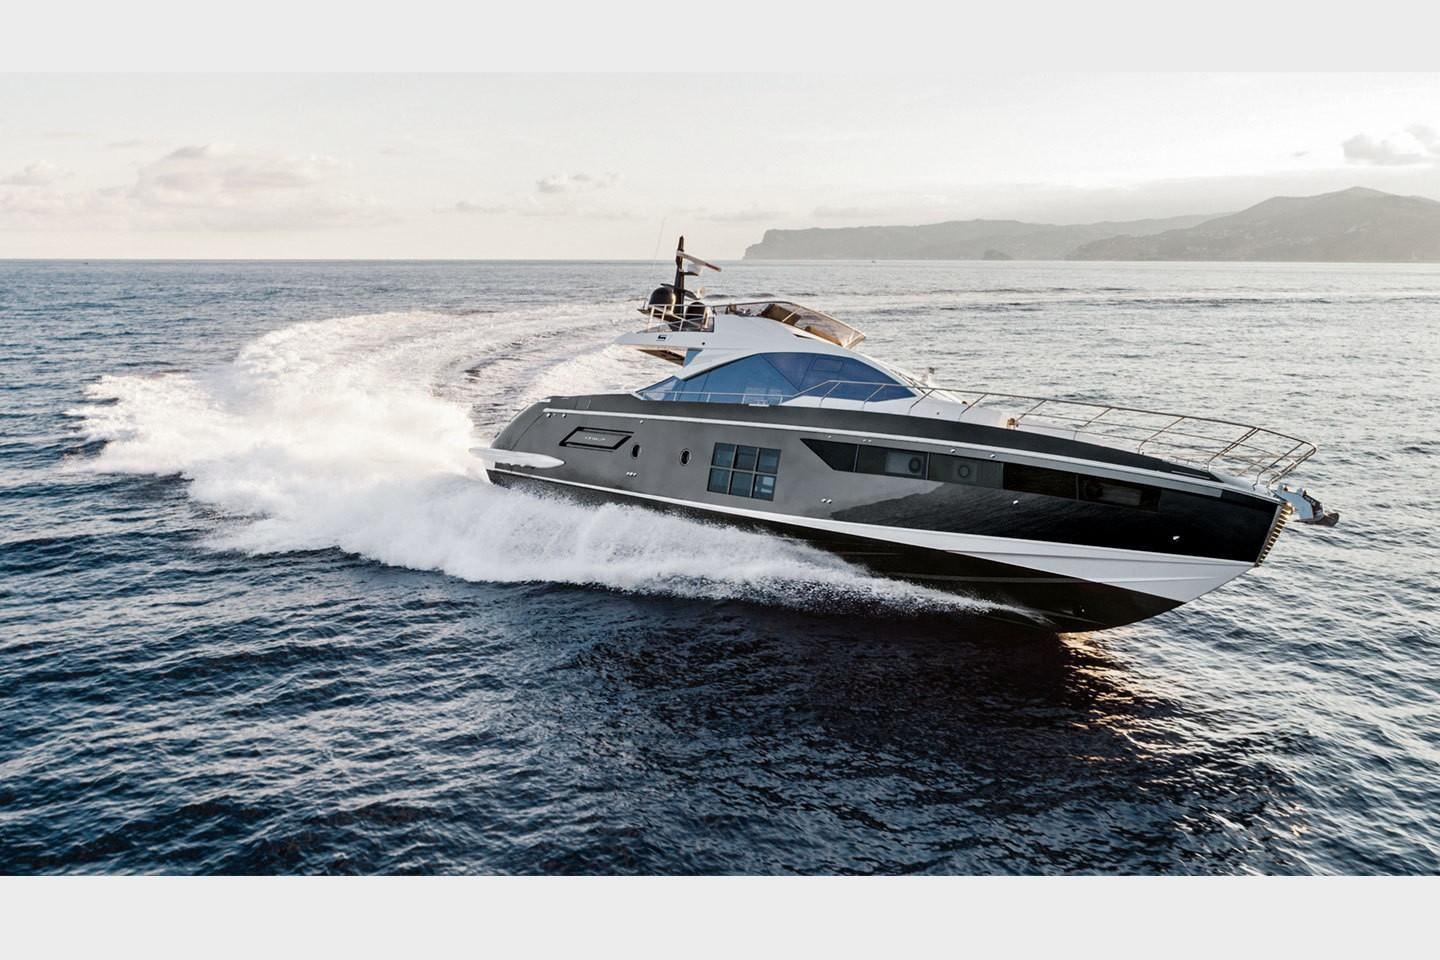 Thumbnail 2 for 2020 Azimut S7 COUPE